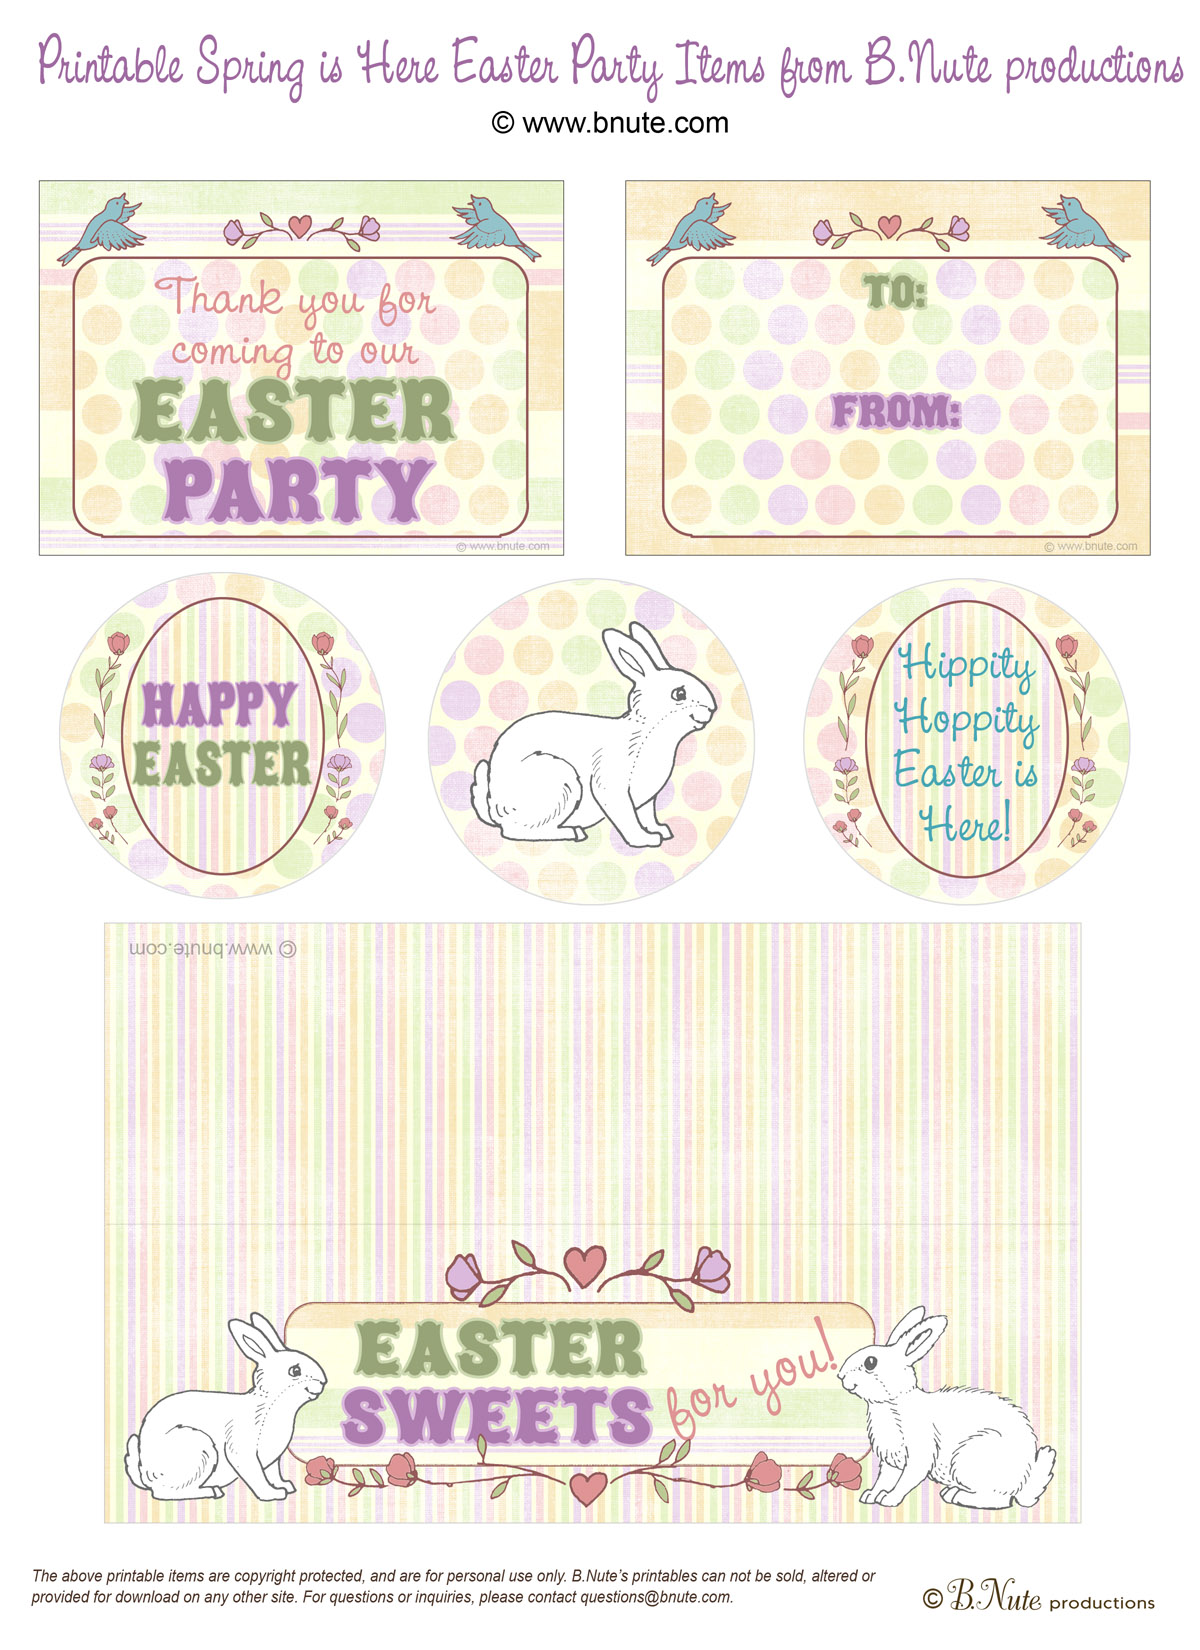 Bnute Productions Free Easter Printables Spring Is Here